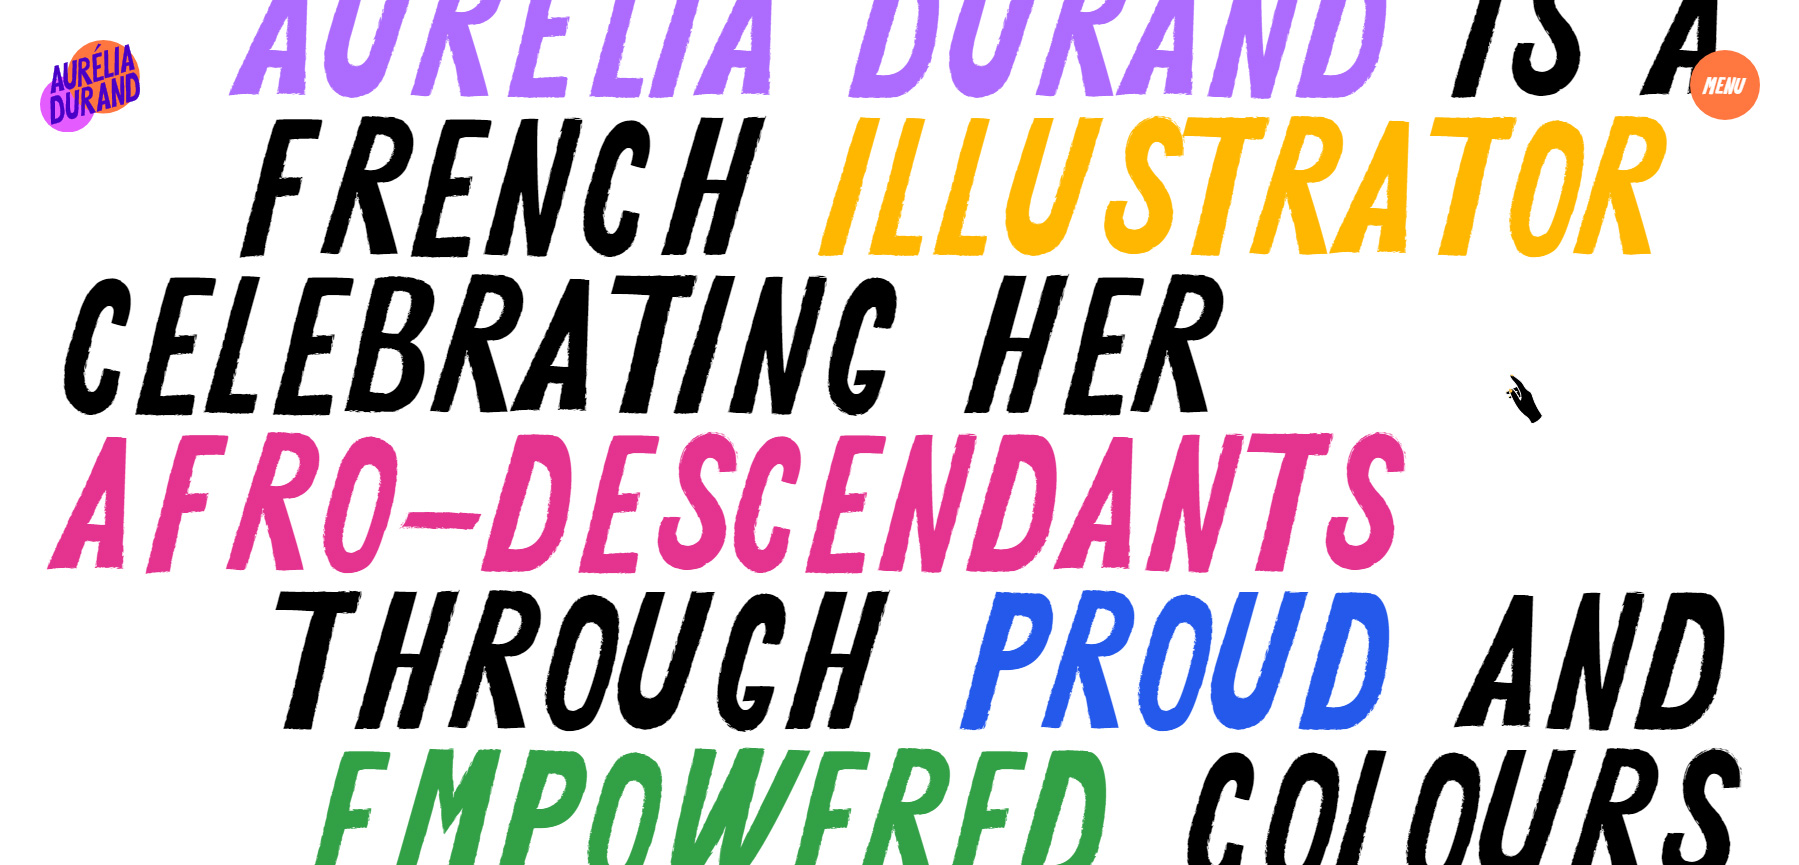 Aurélia Durand - Website of the Day